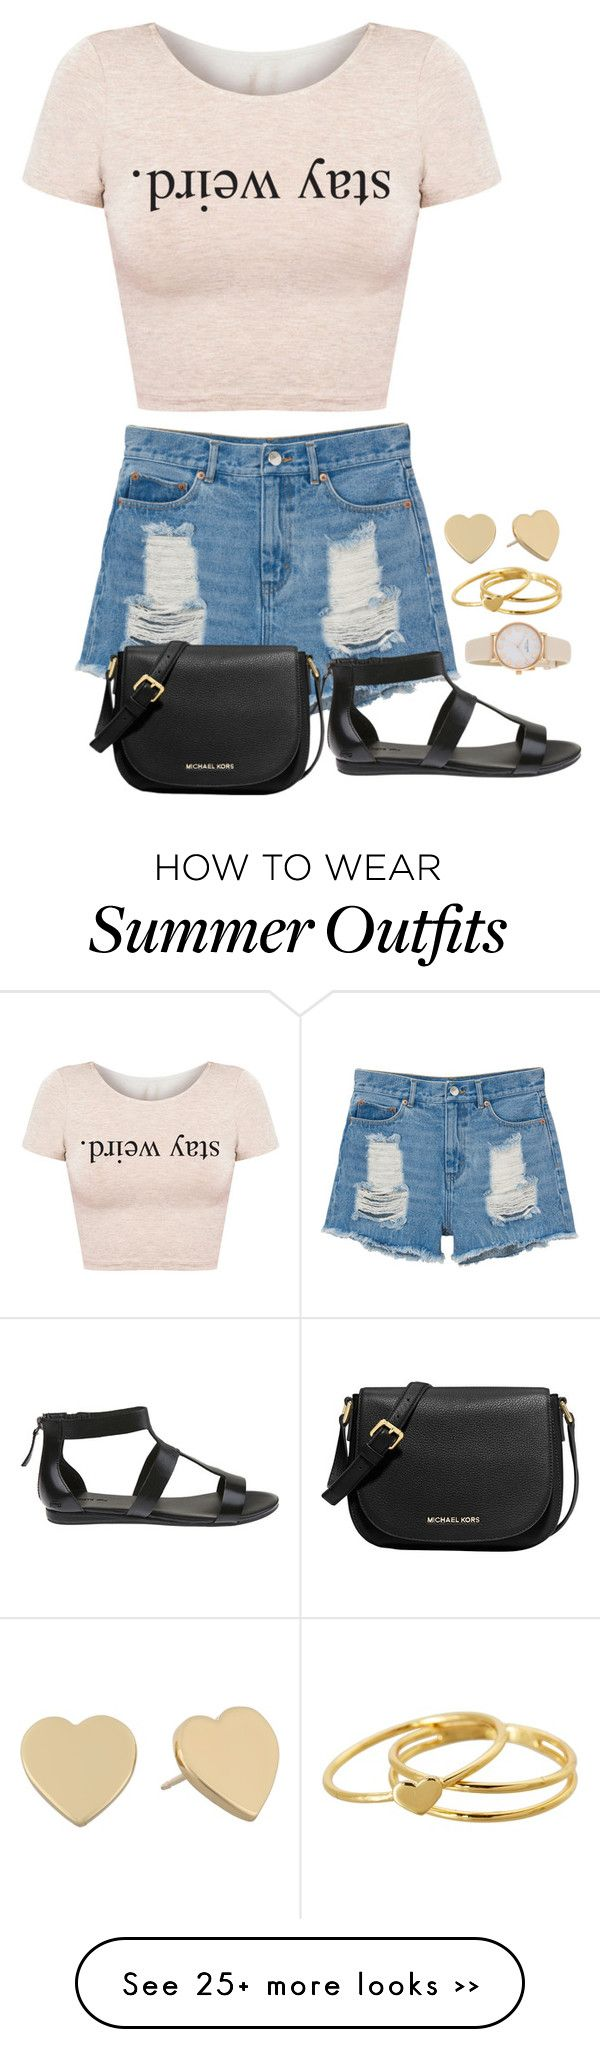 """""""summer outfit #1"""" by evelyn-rodriguez-3 on Polyvore"""